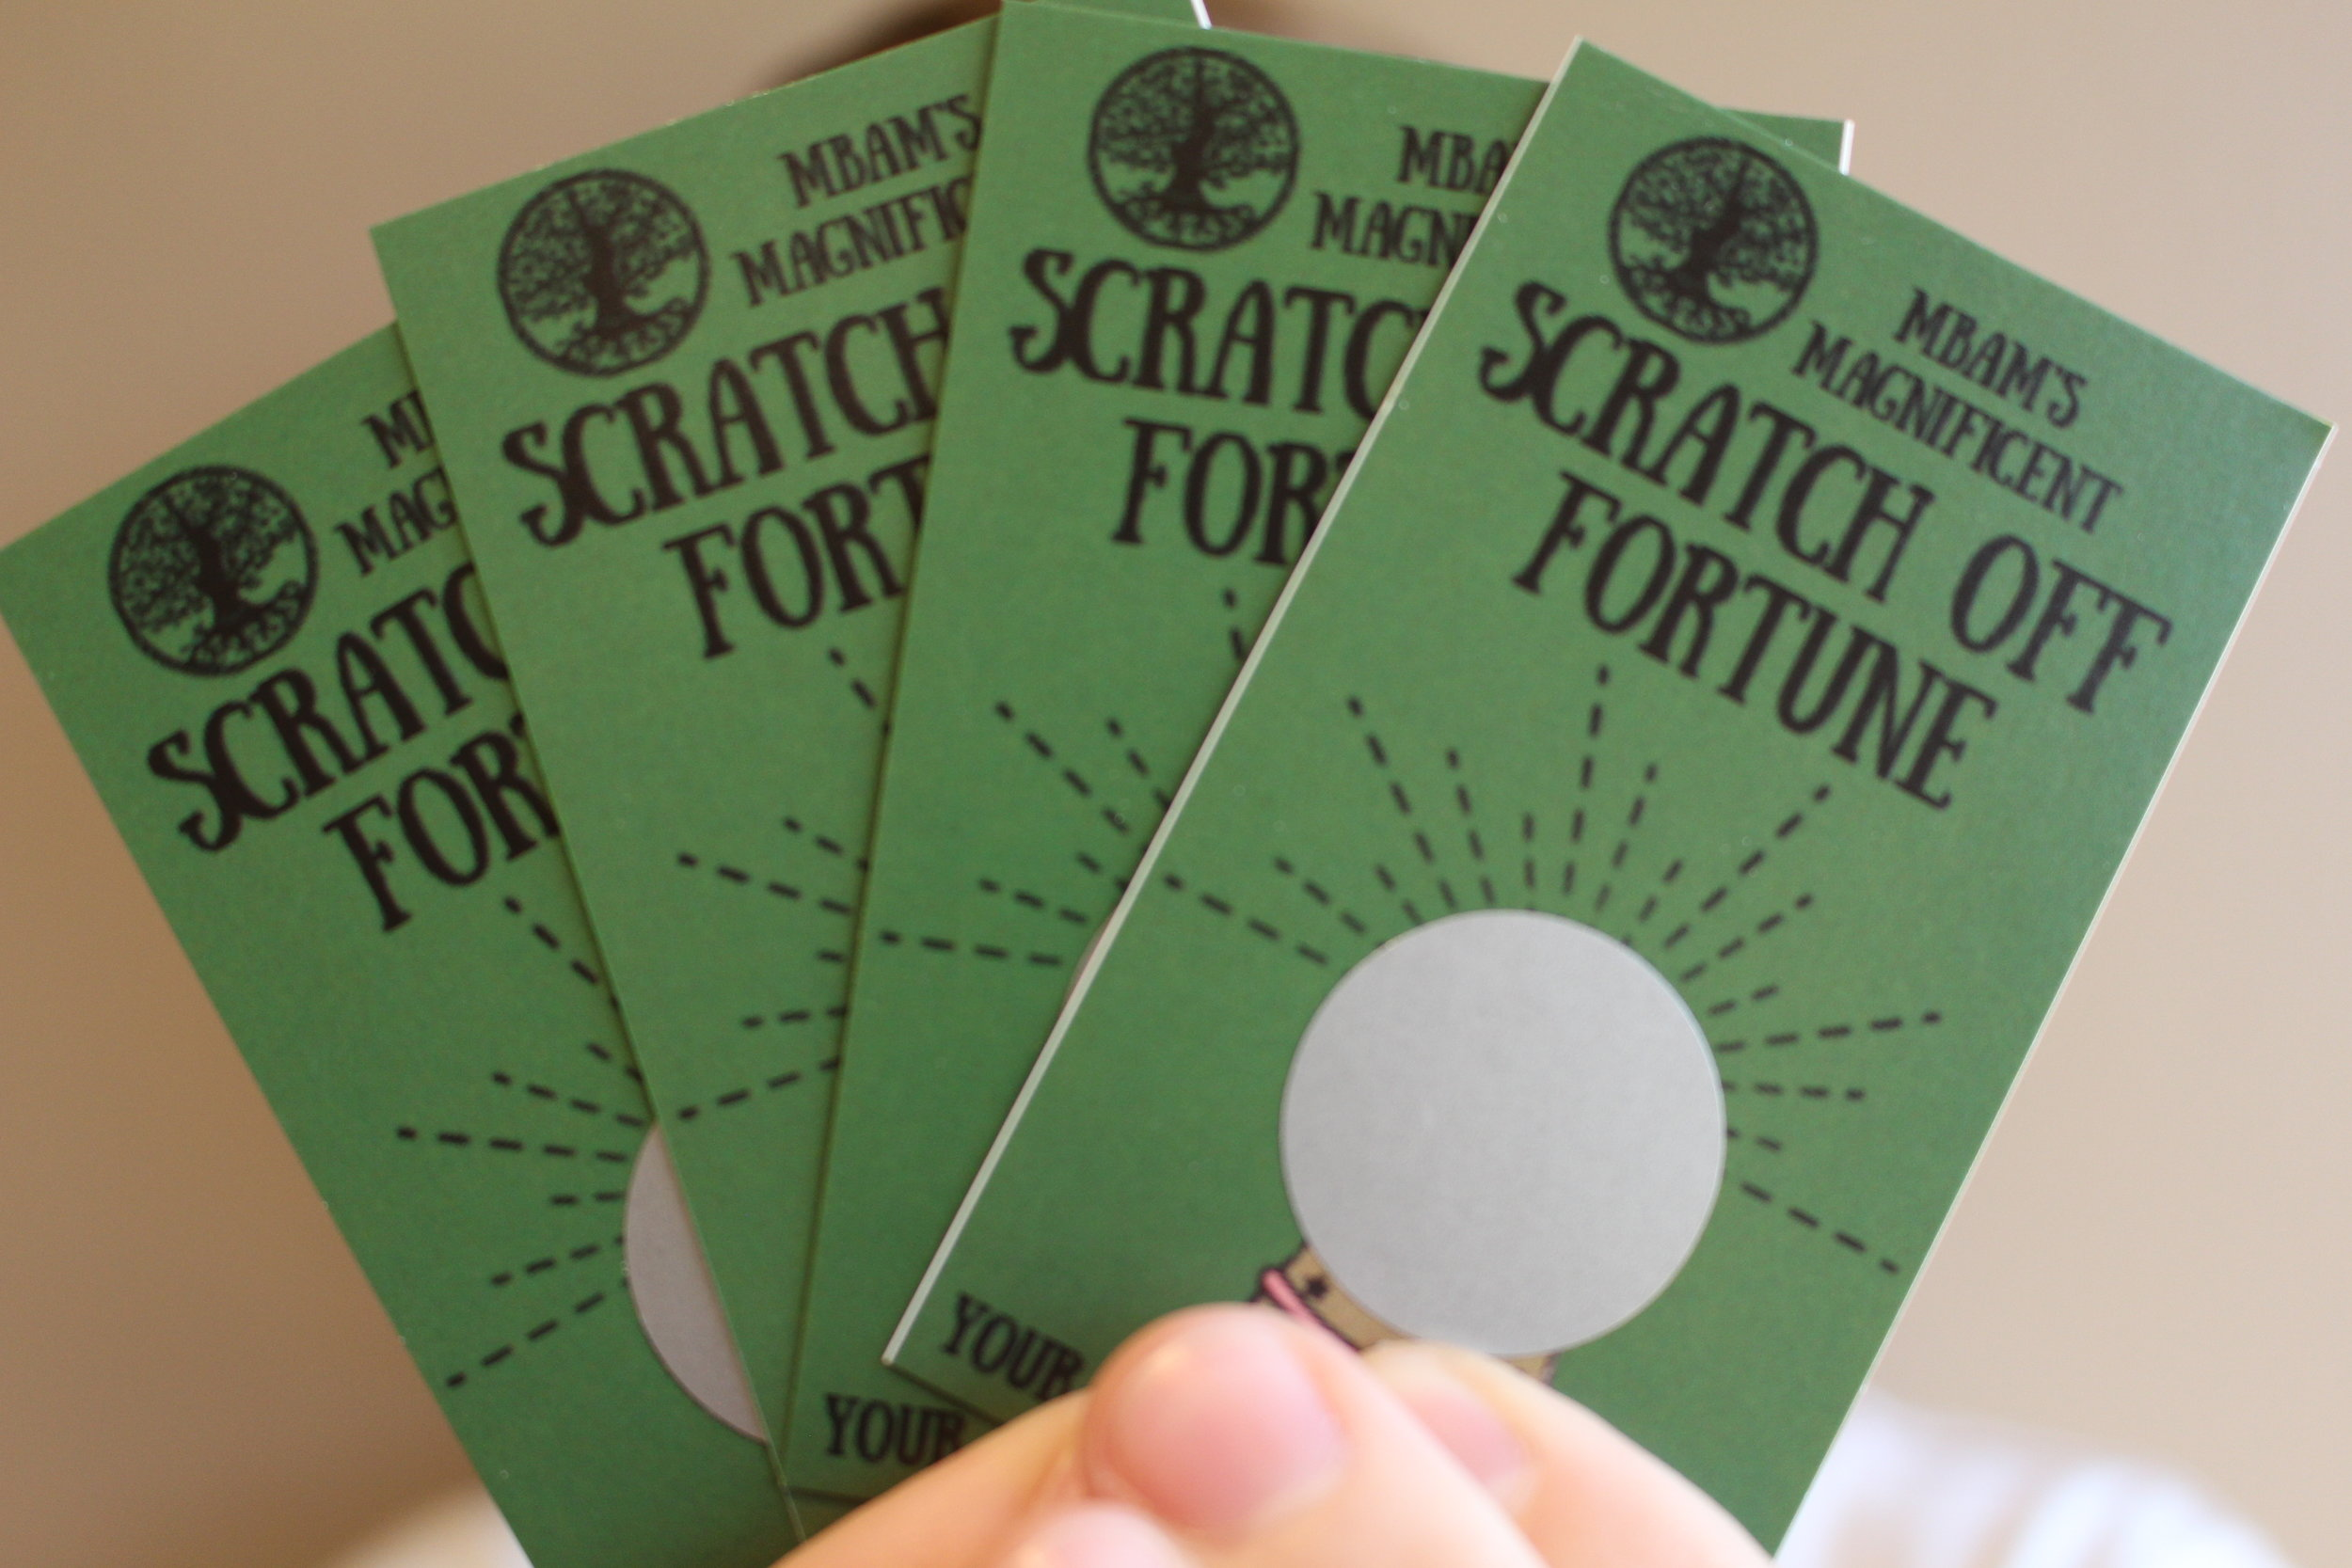 When you open your bag of purchases, inside there will also be a scratch card.Scratch to see your Magnificent Fortune! -